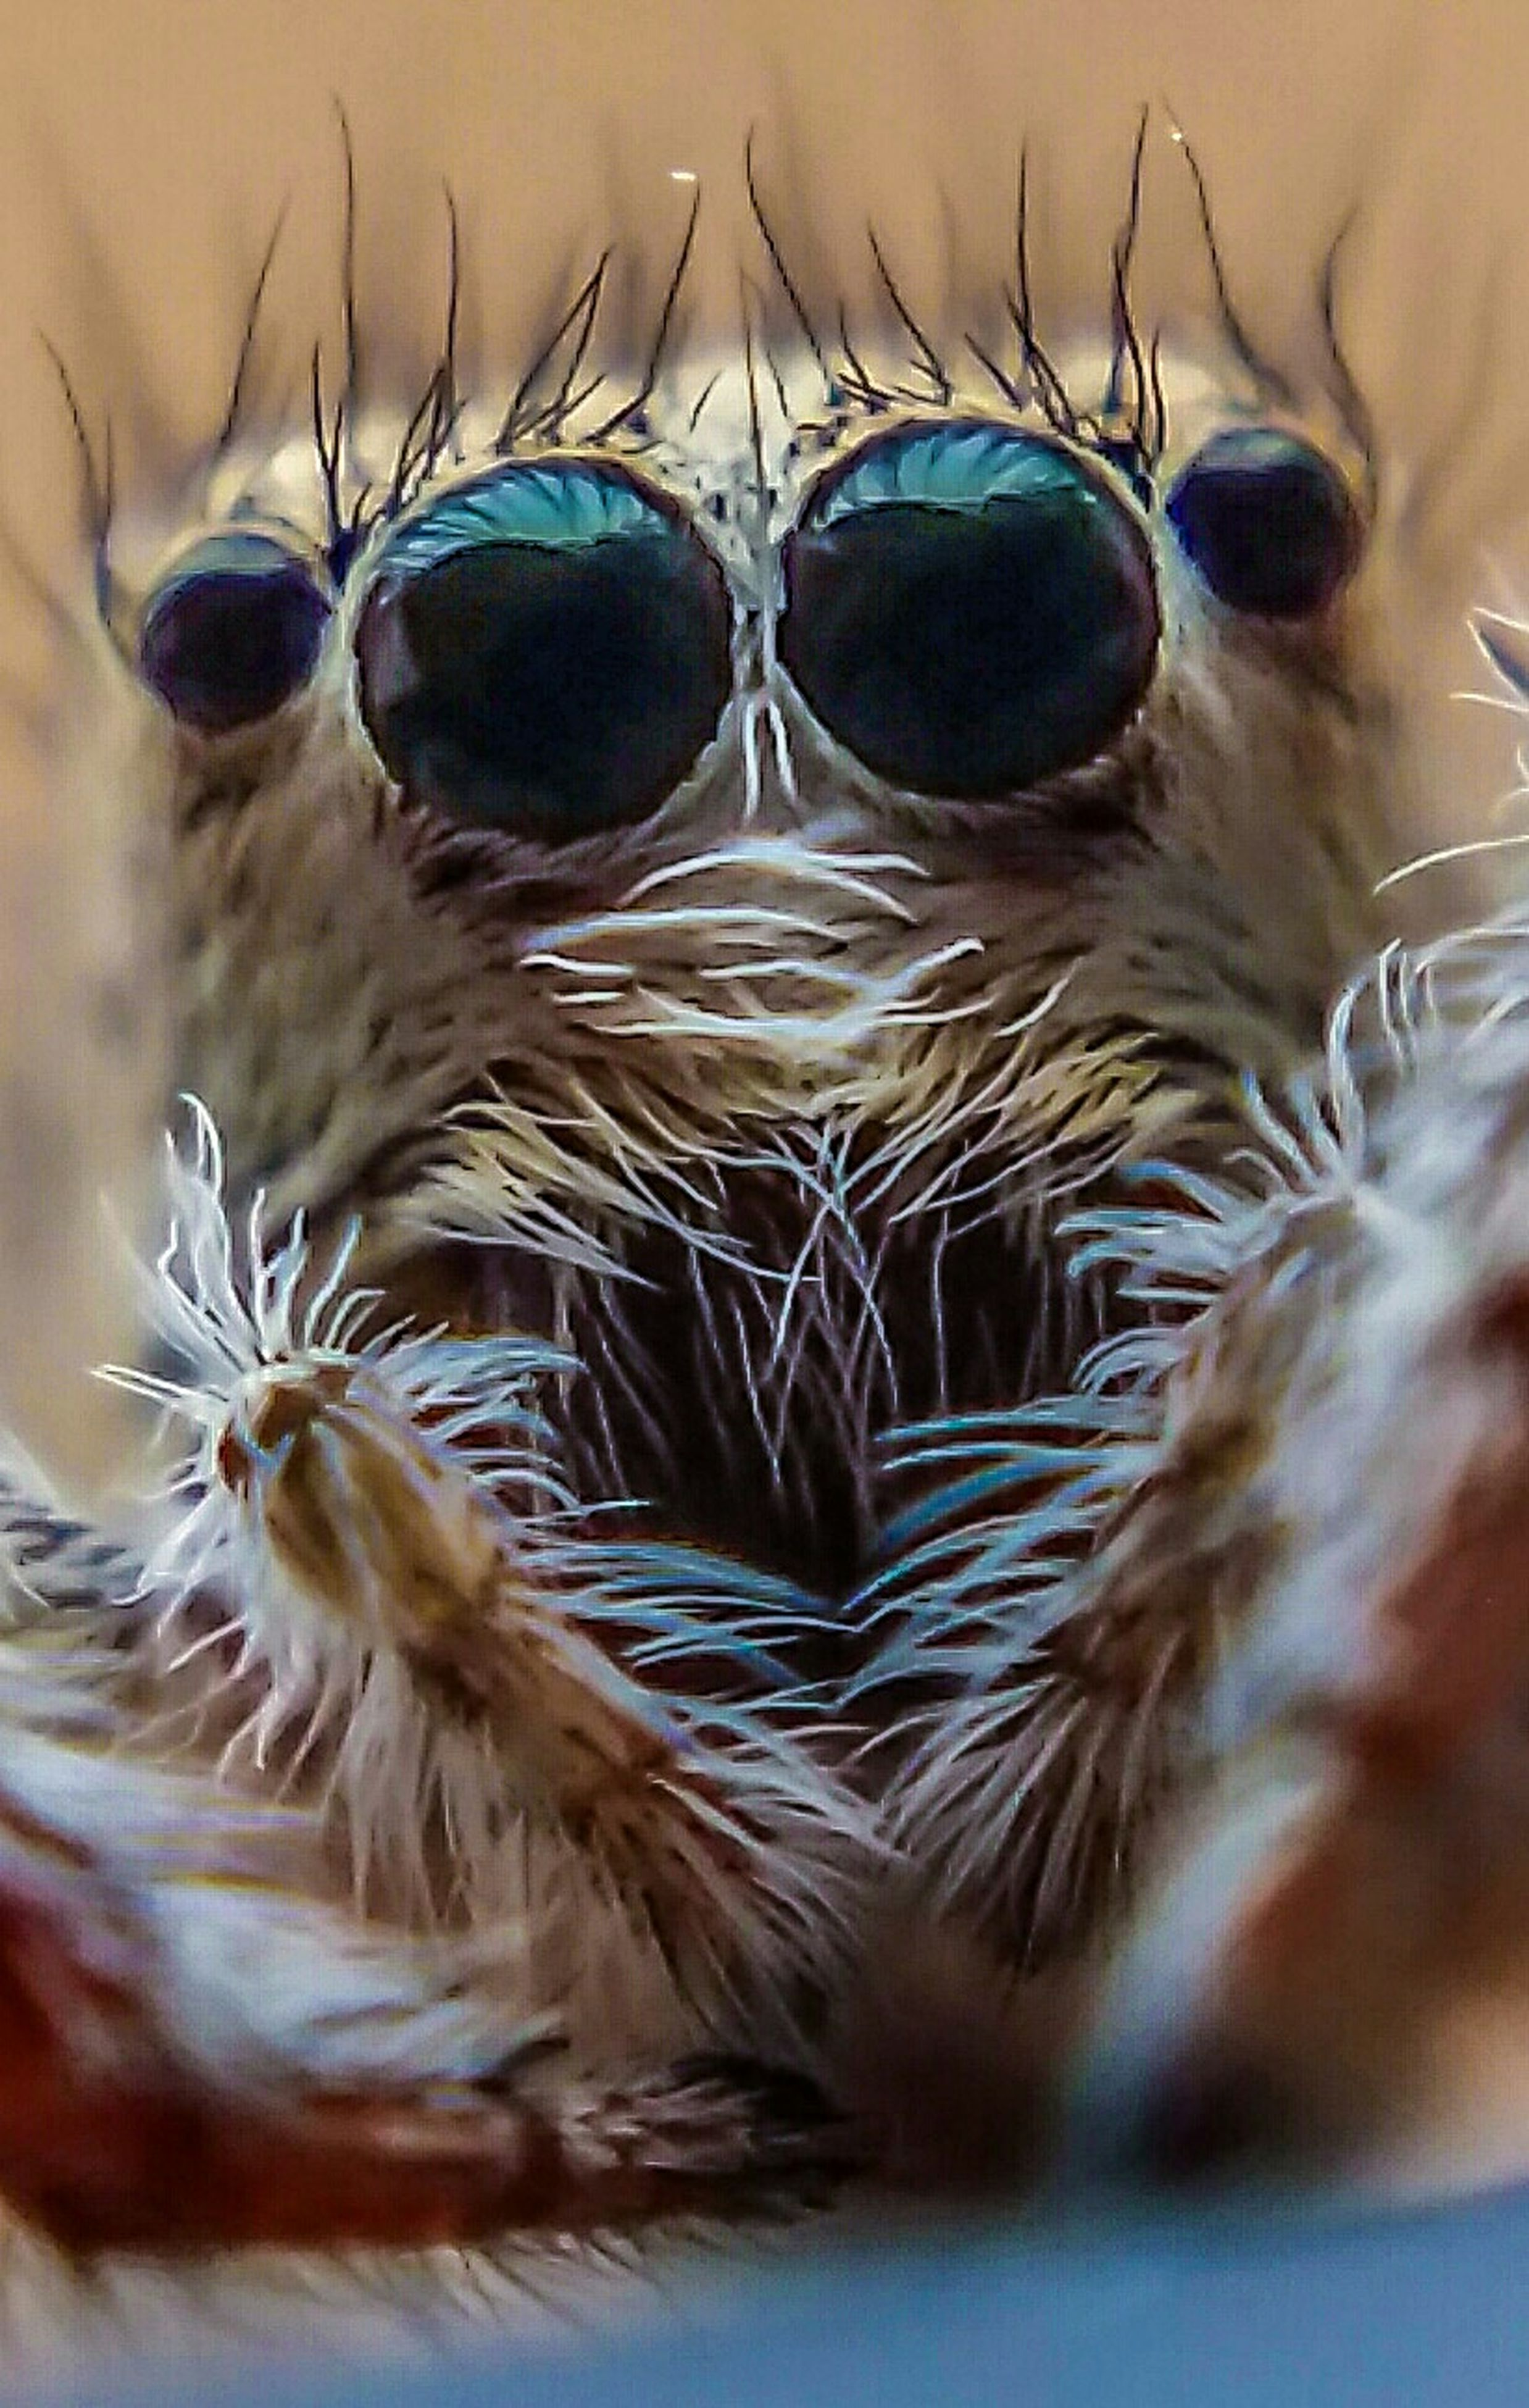 animal themes, close-up, one animal, wildlife, indoors, animals in the wild, selective focus, focus on foreground, insect, detail, animal body part, animal head, part of, no people, reflection, extreme close-up, macro, day, nature, water